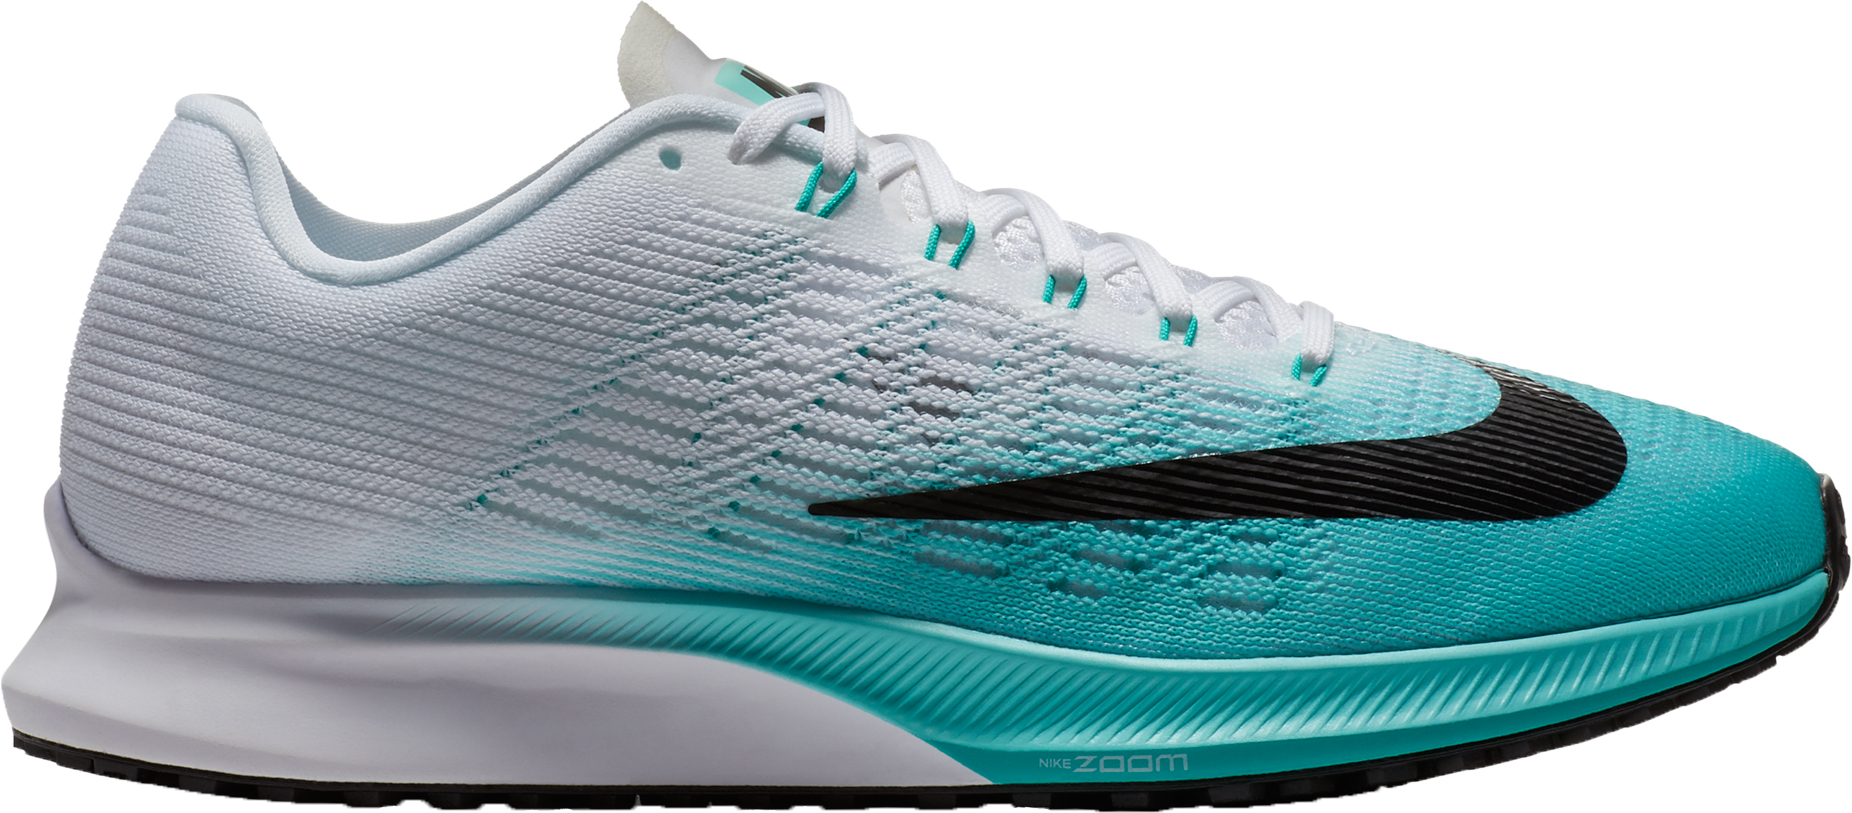 lower price with arrives multiple colors Nike Air Zoom Elite 9 Road Running Shoes - Women's   MEC